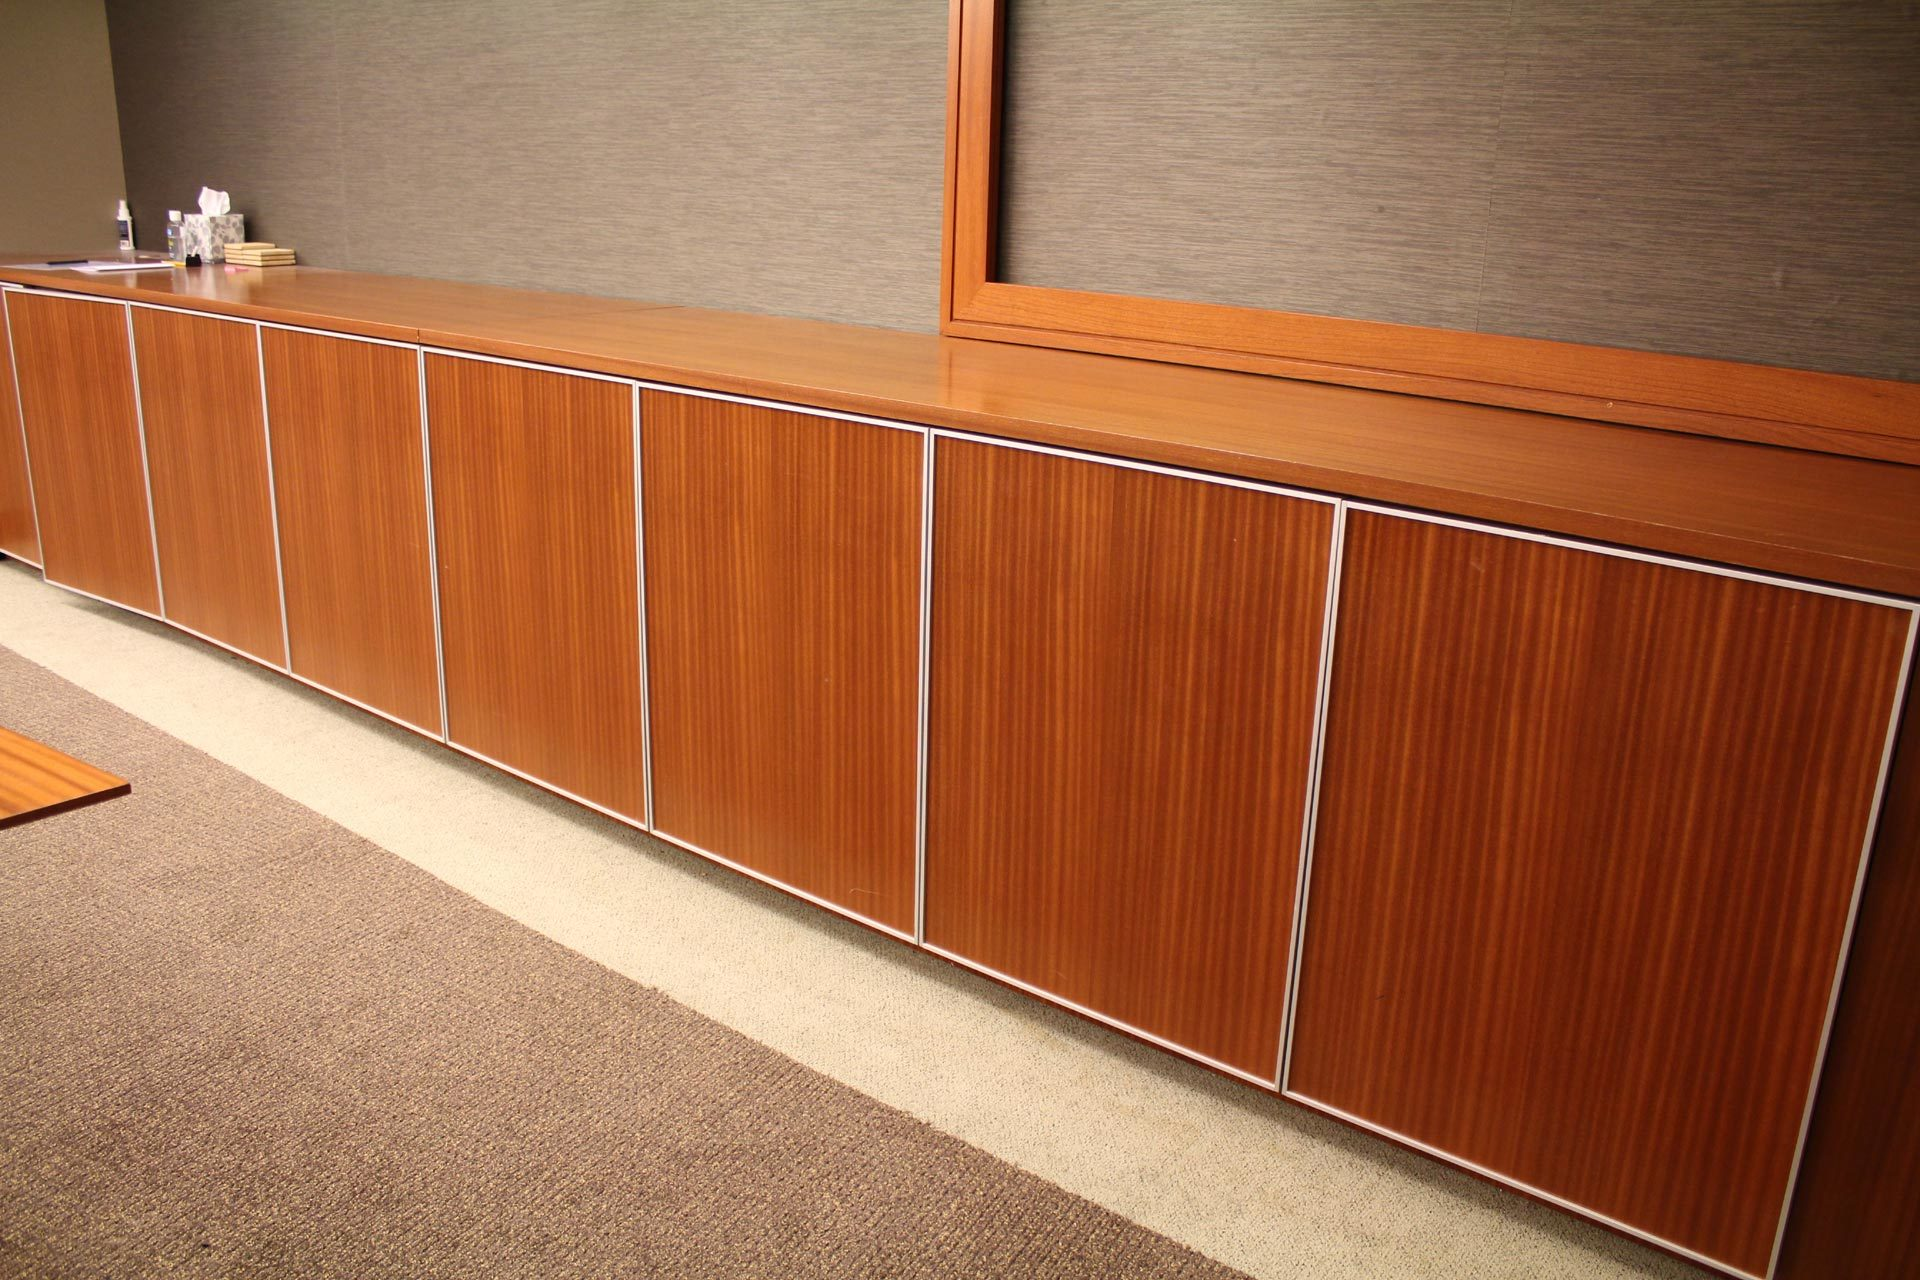 peartreeofficefurniture_peartreeofficefurniture_nienkamper-credenzas.jpg